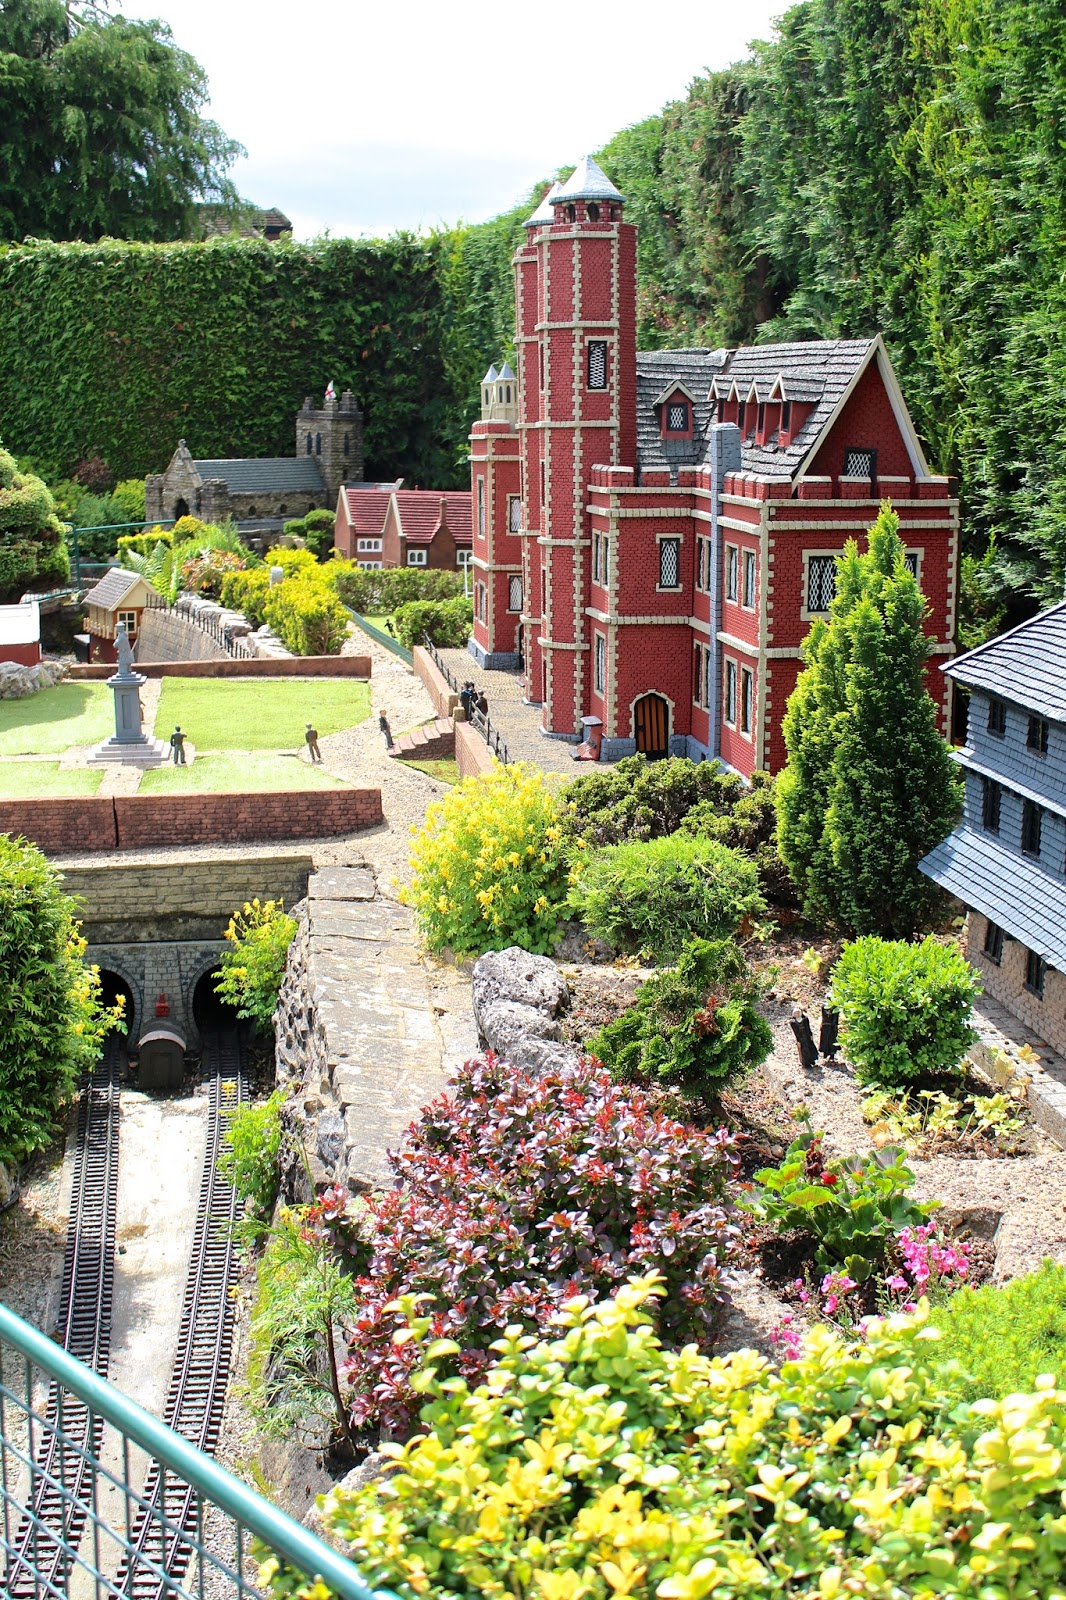 A summer visit to Bekonscot model village